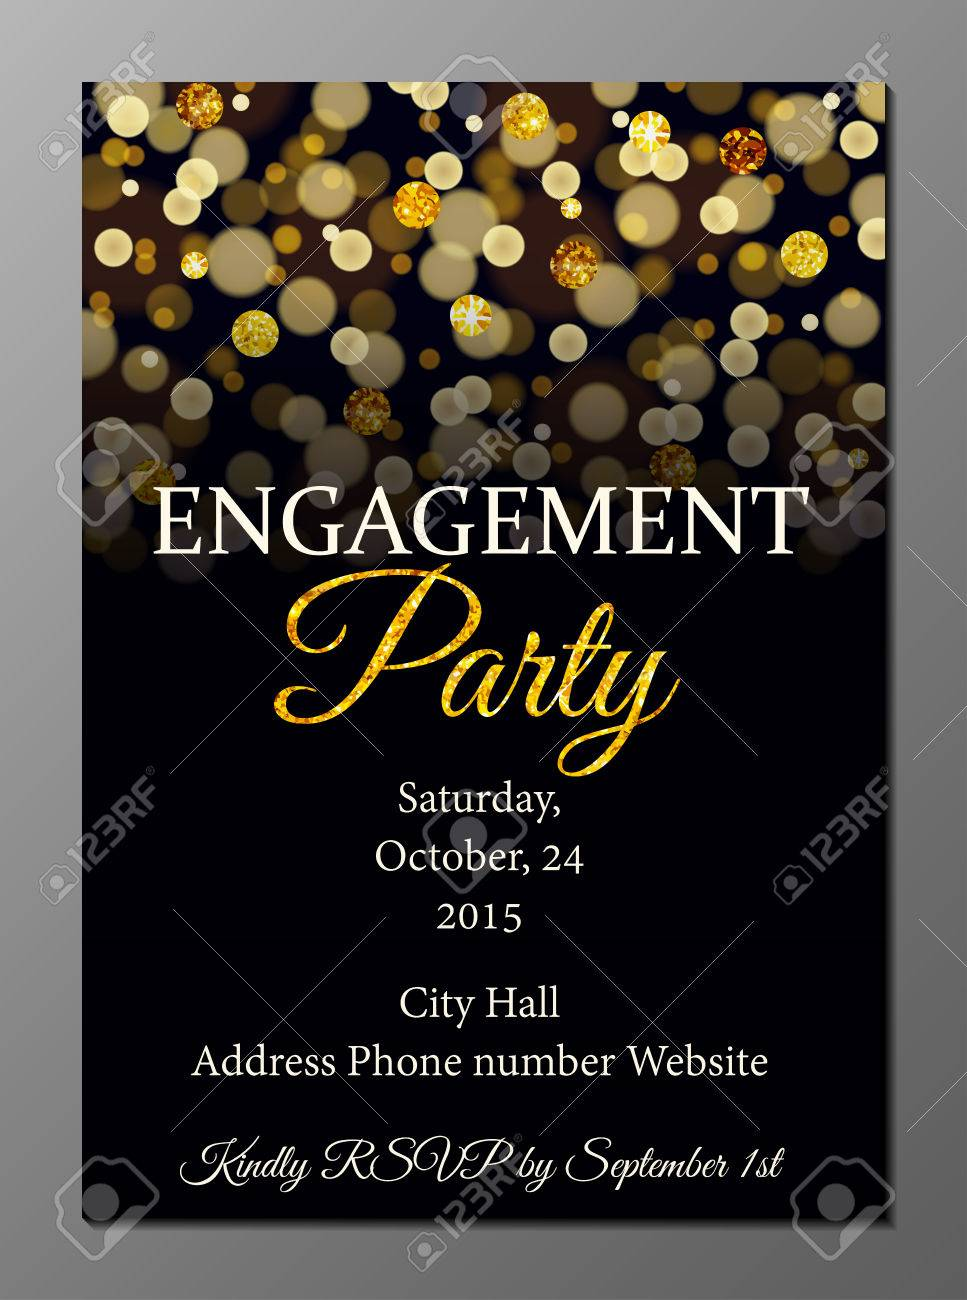 Vector Illustration Of Party Invitation Card Design Template